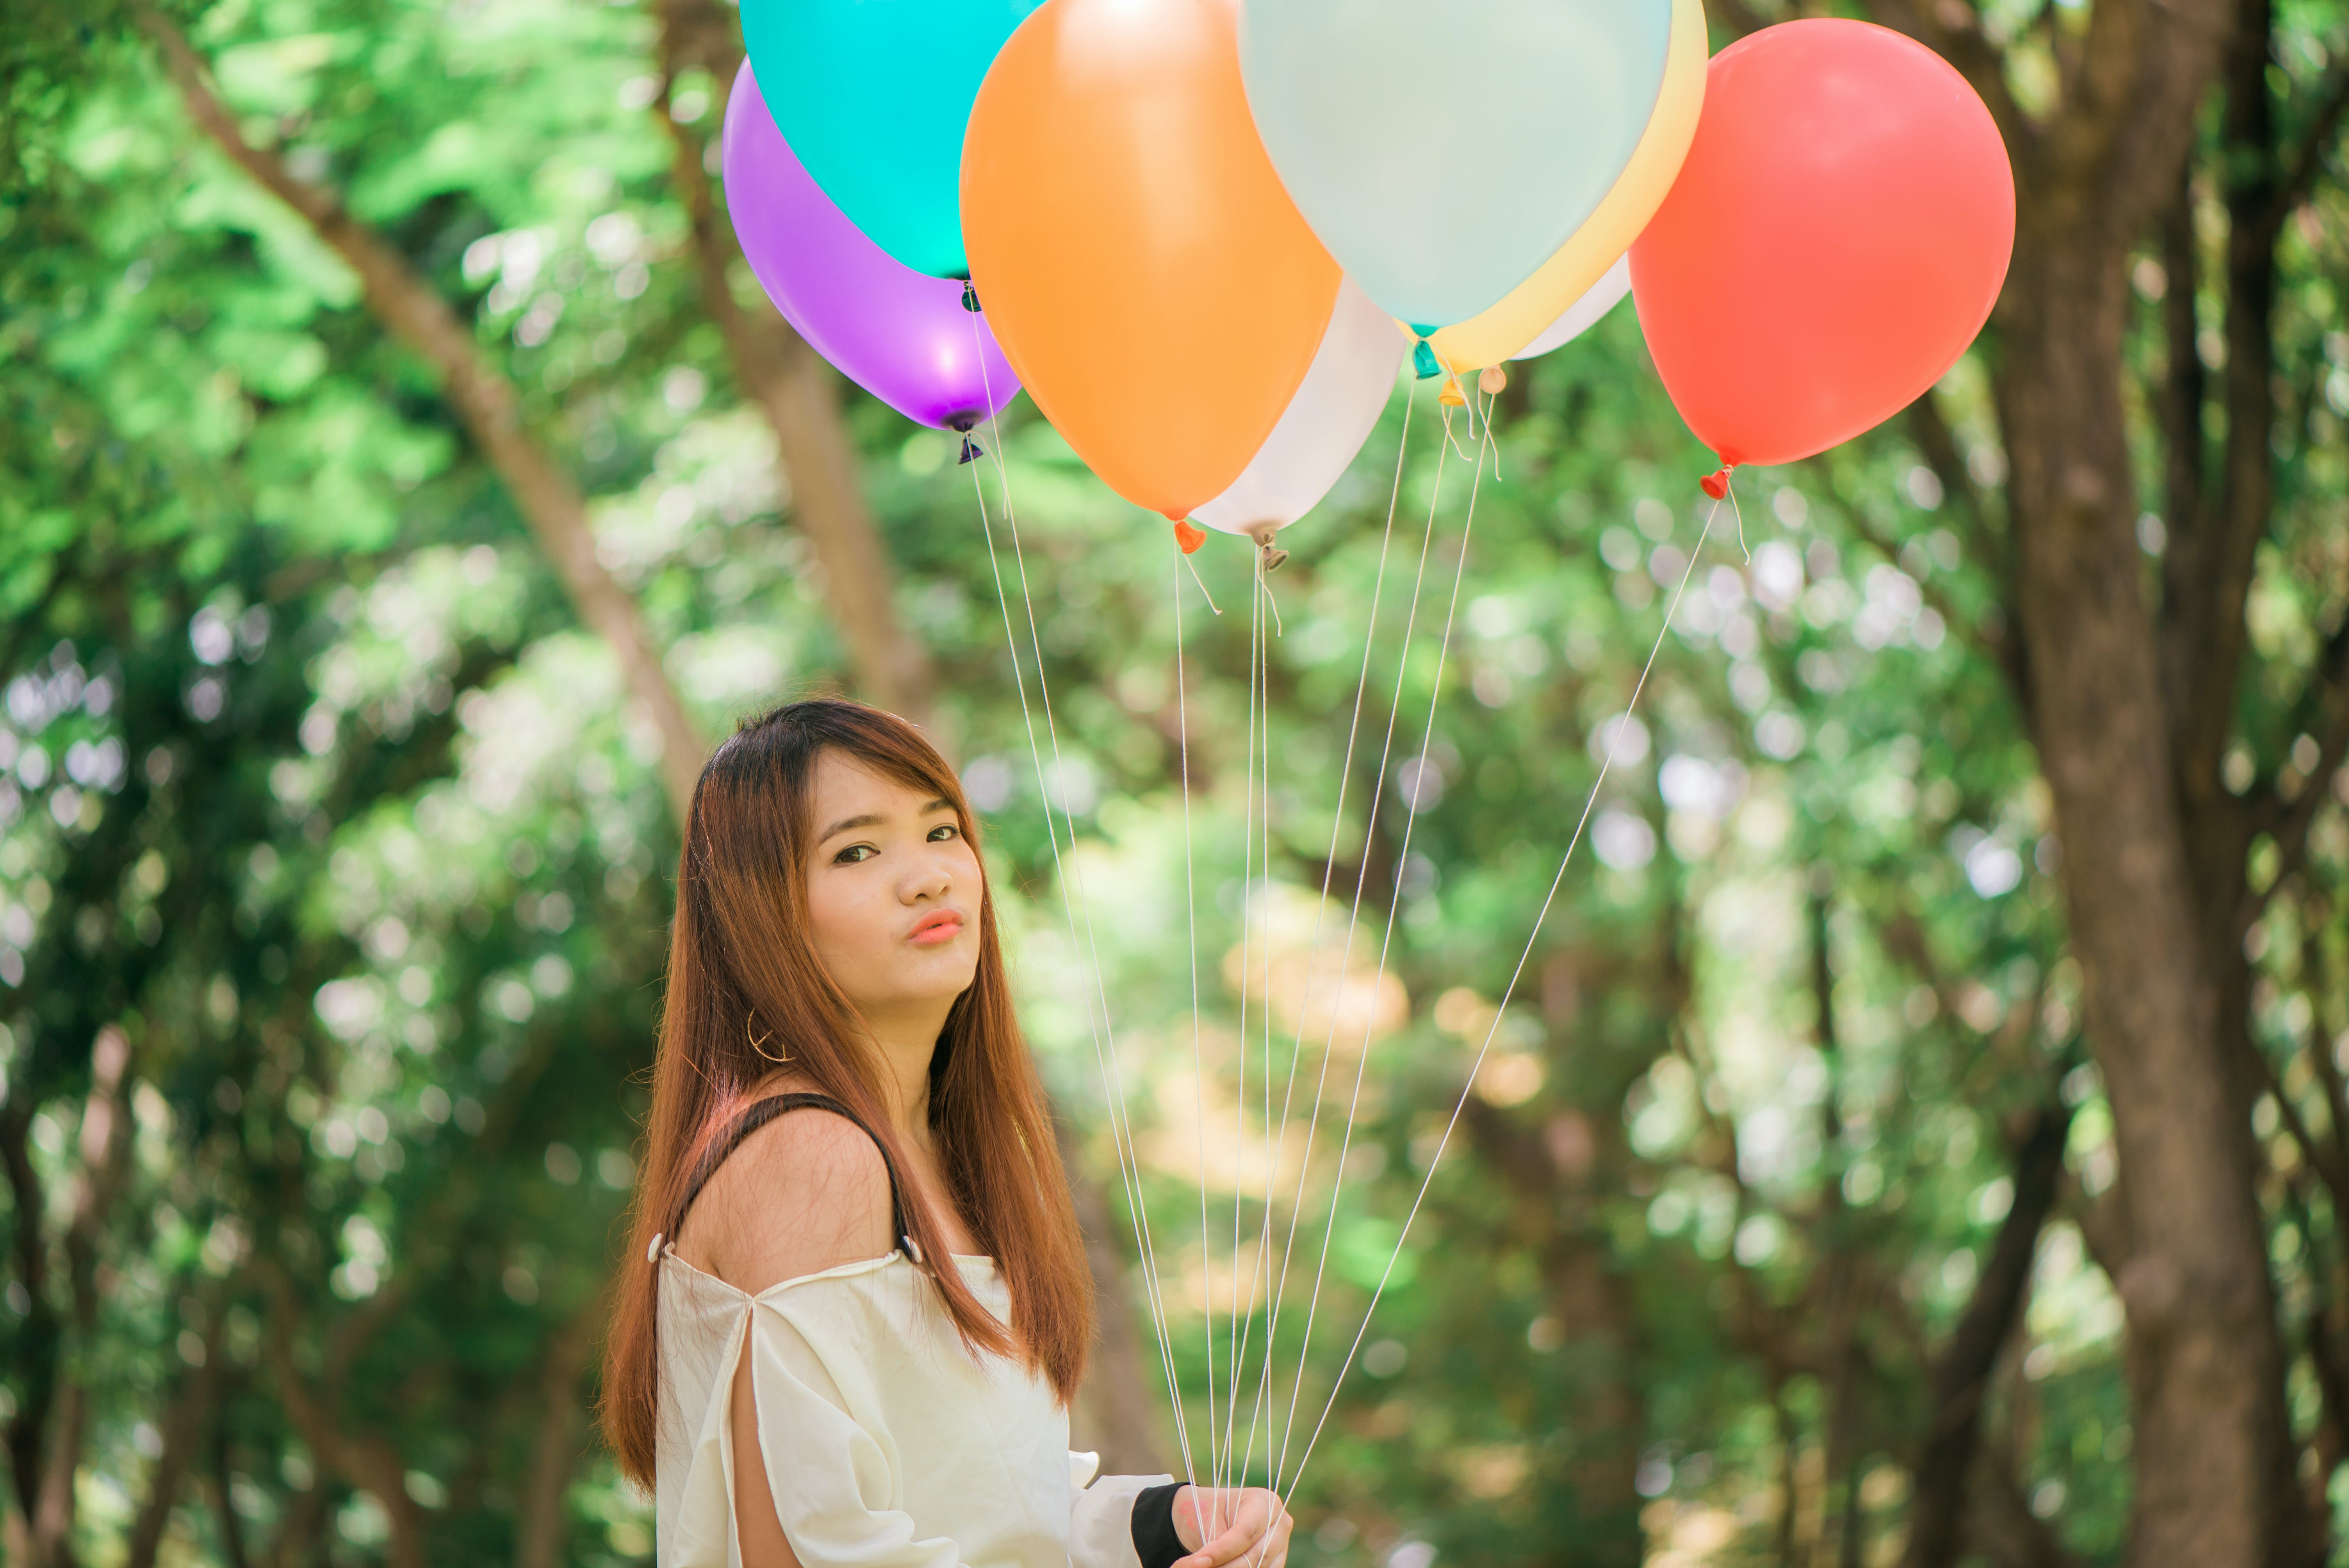 Woman Pouching Her Lips While Holding Balloons